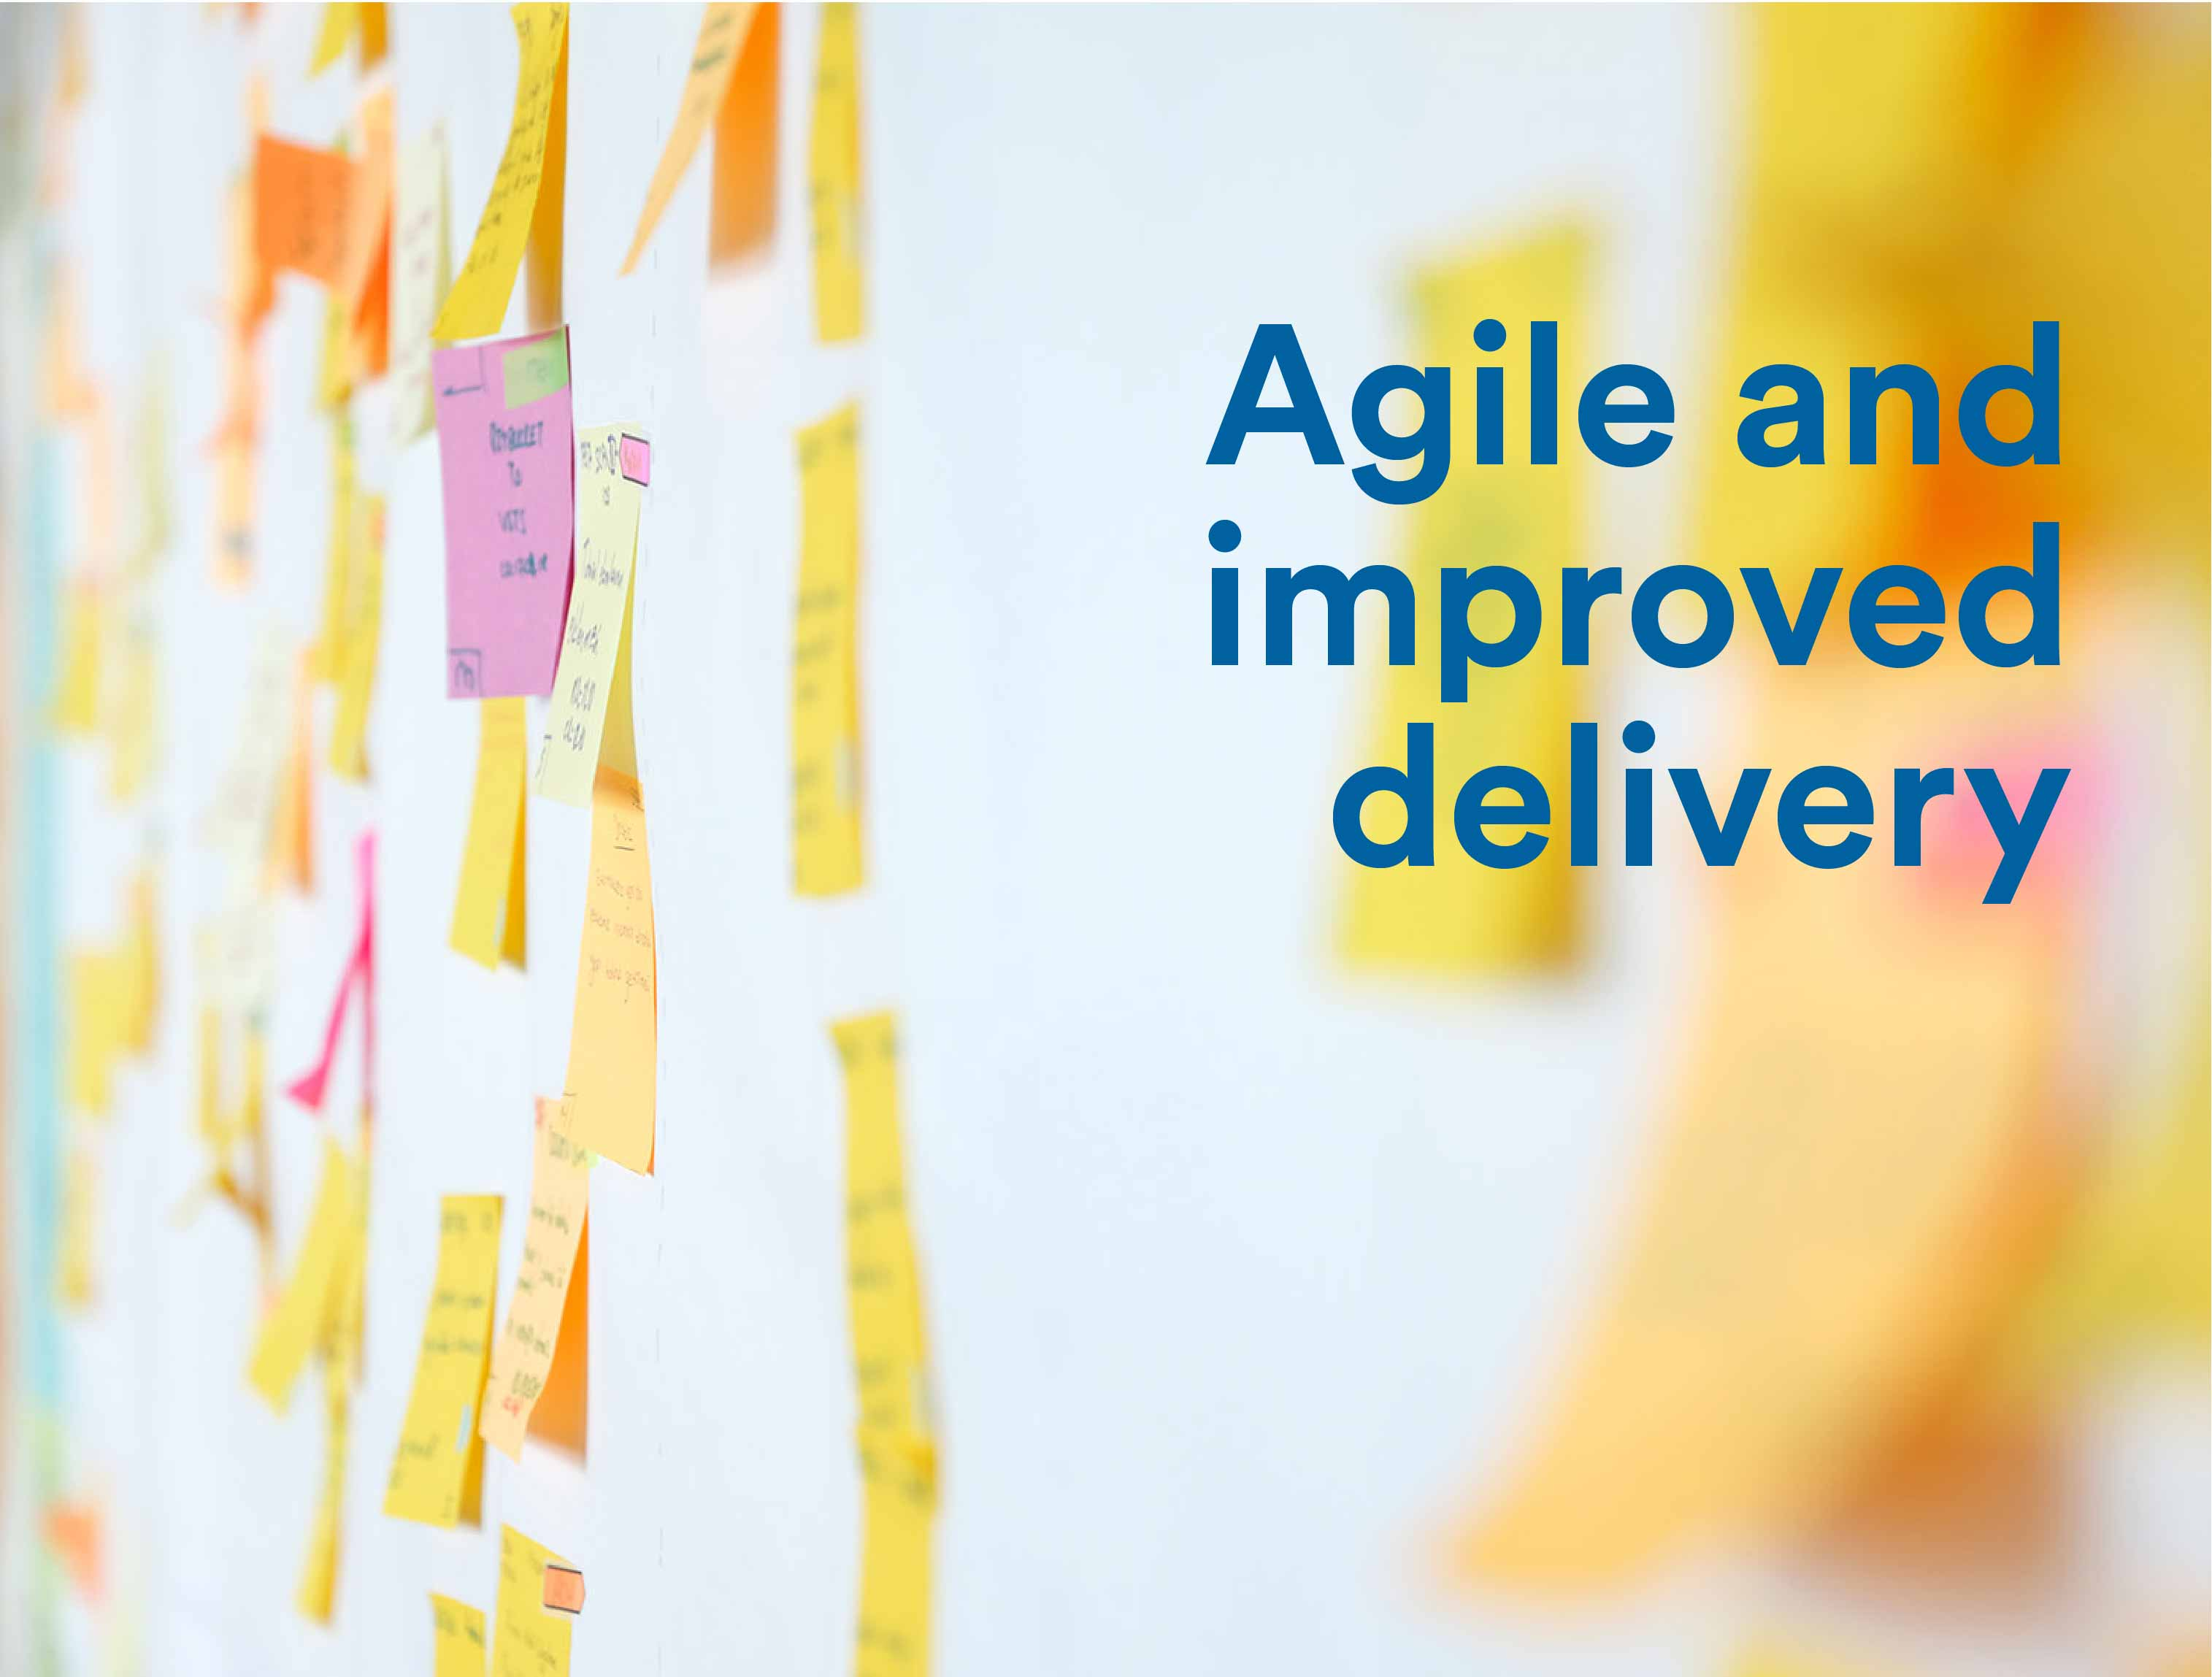 How the retail long-running team used agile to improve delivery